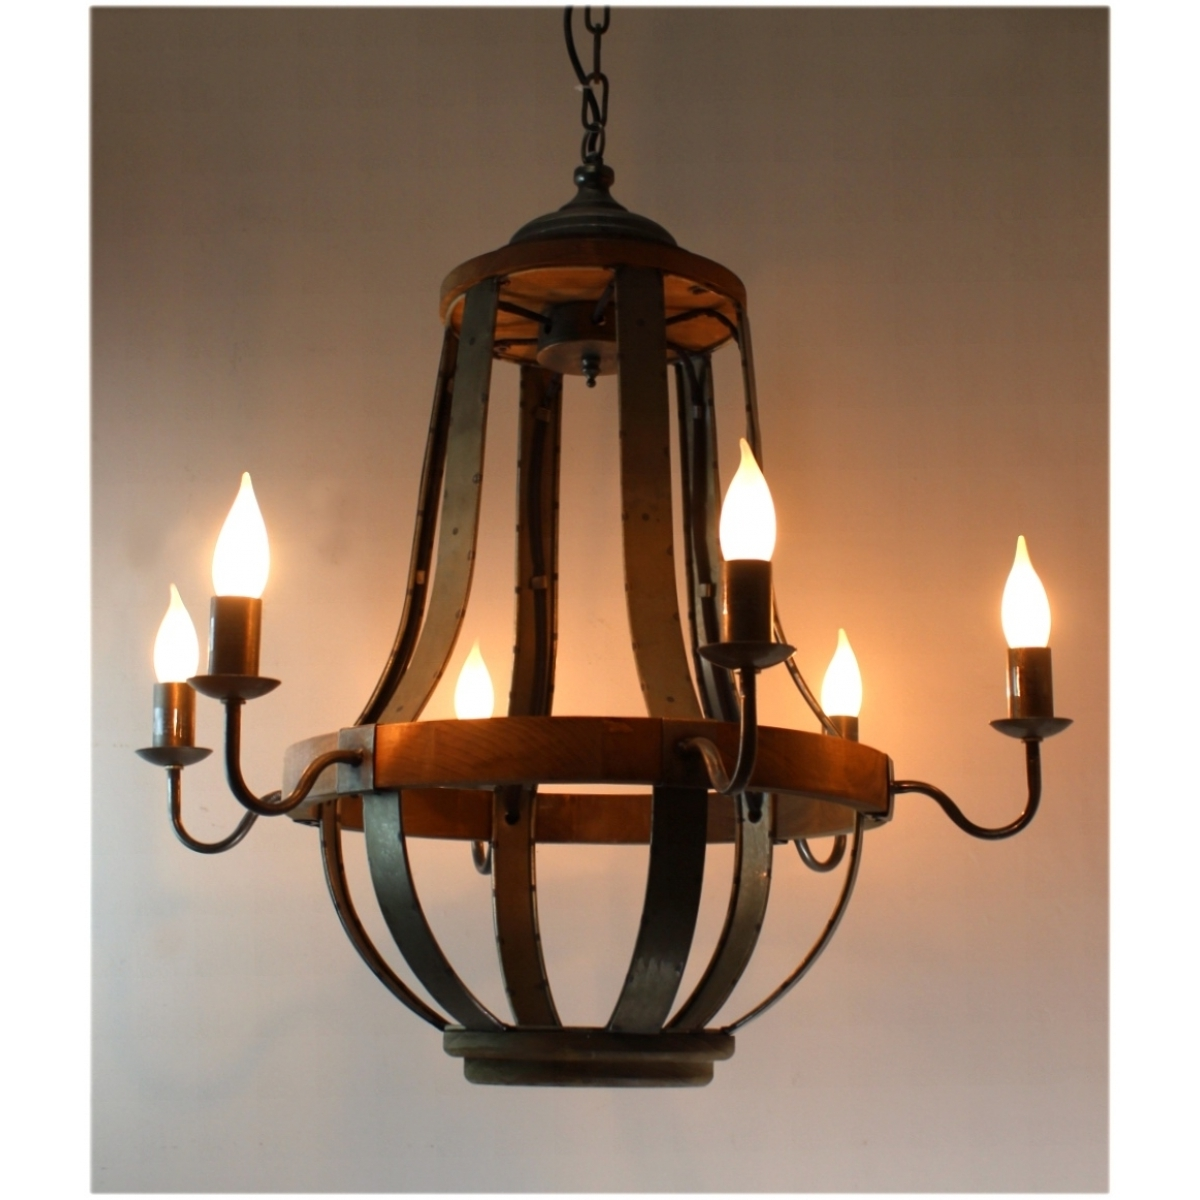 Latest $579 Iron Strap And Aged Wood Chandelier French Country Vintage Intended For Vintage French Chandeliers (View 14 of 15)